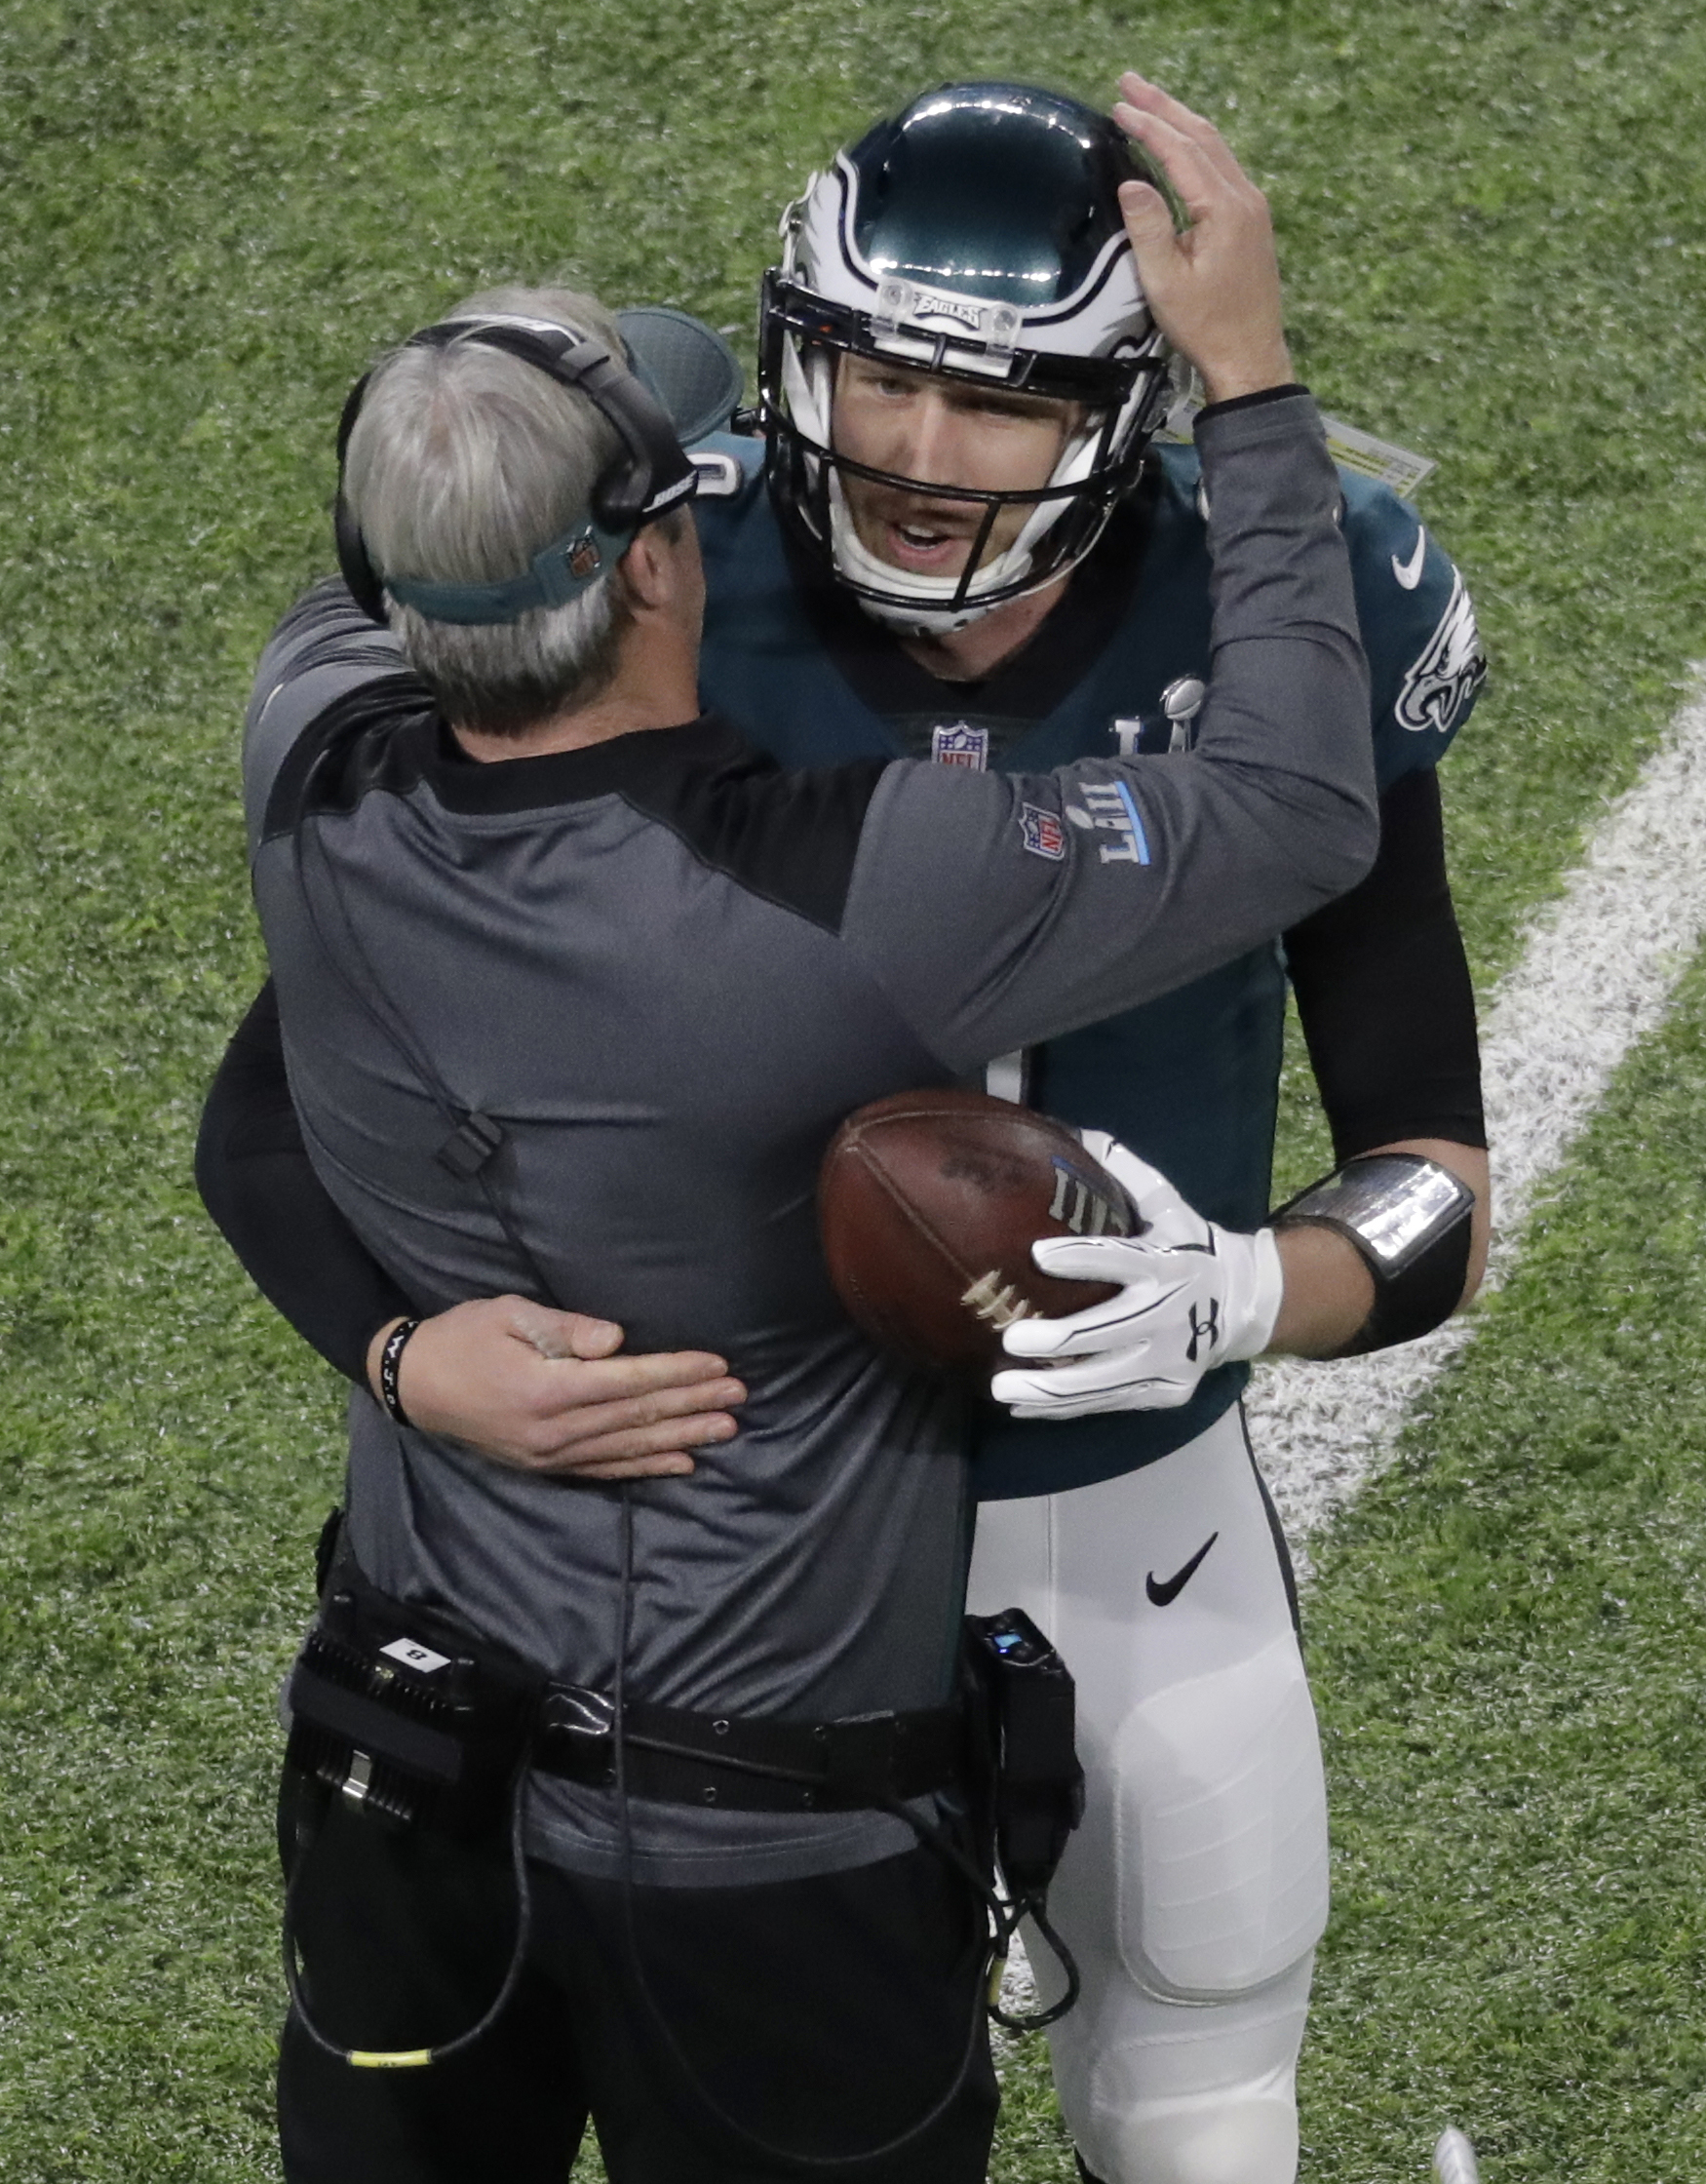 <div class='meta'><div class='origin-logo' data-origin='AP'></div><span class='caption-text' data-credit='AP Photo/Eric Gay'>Philadelphia Eagles quarterback Nick Foles celebrates with Eagles head coach Doug Pederson after scoring a touchdown during the first half.</span></div>